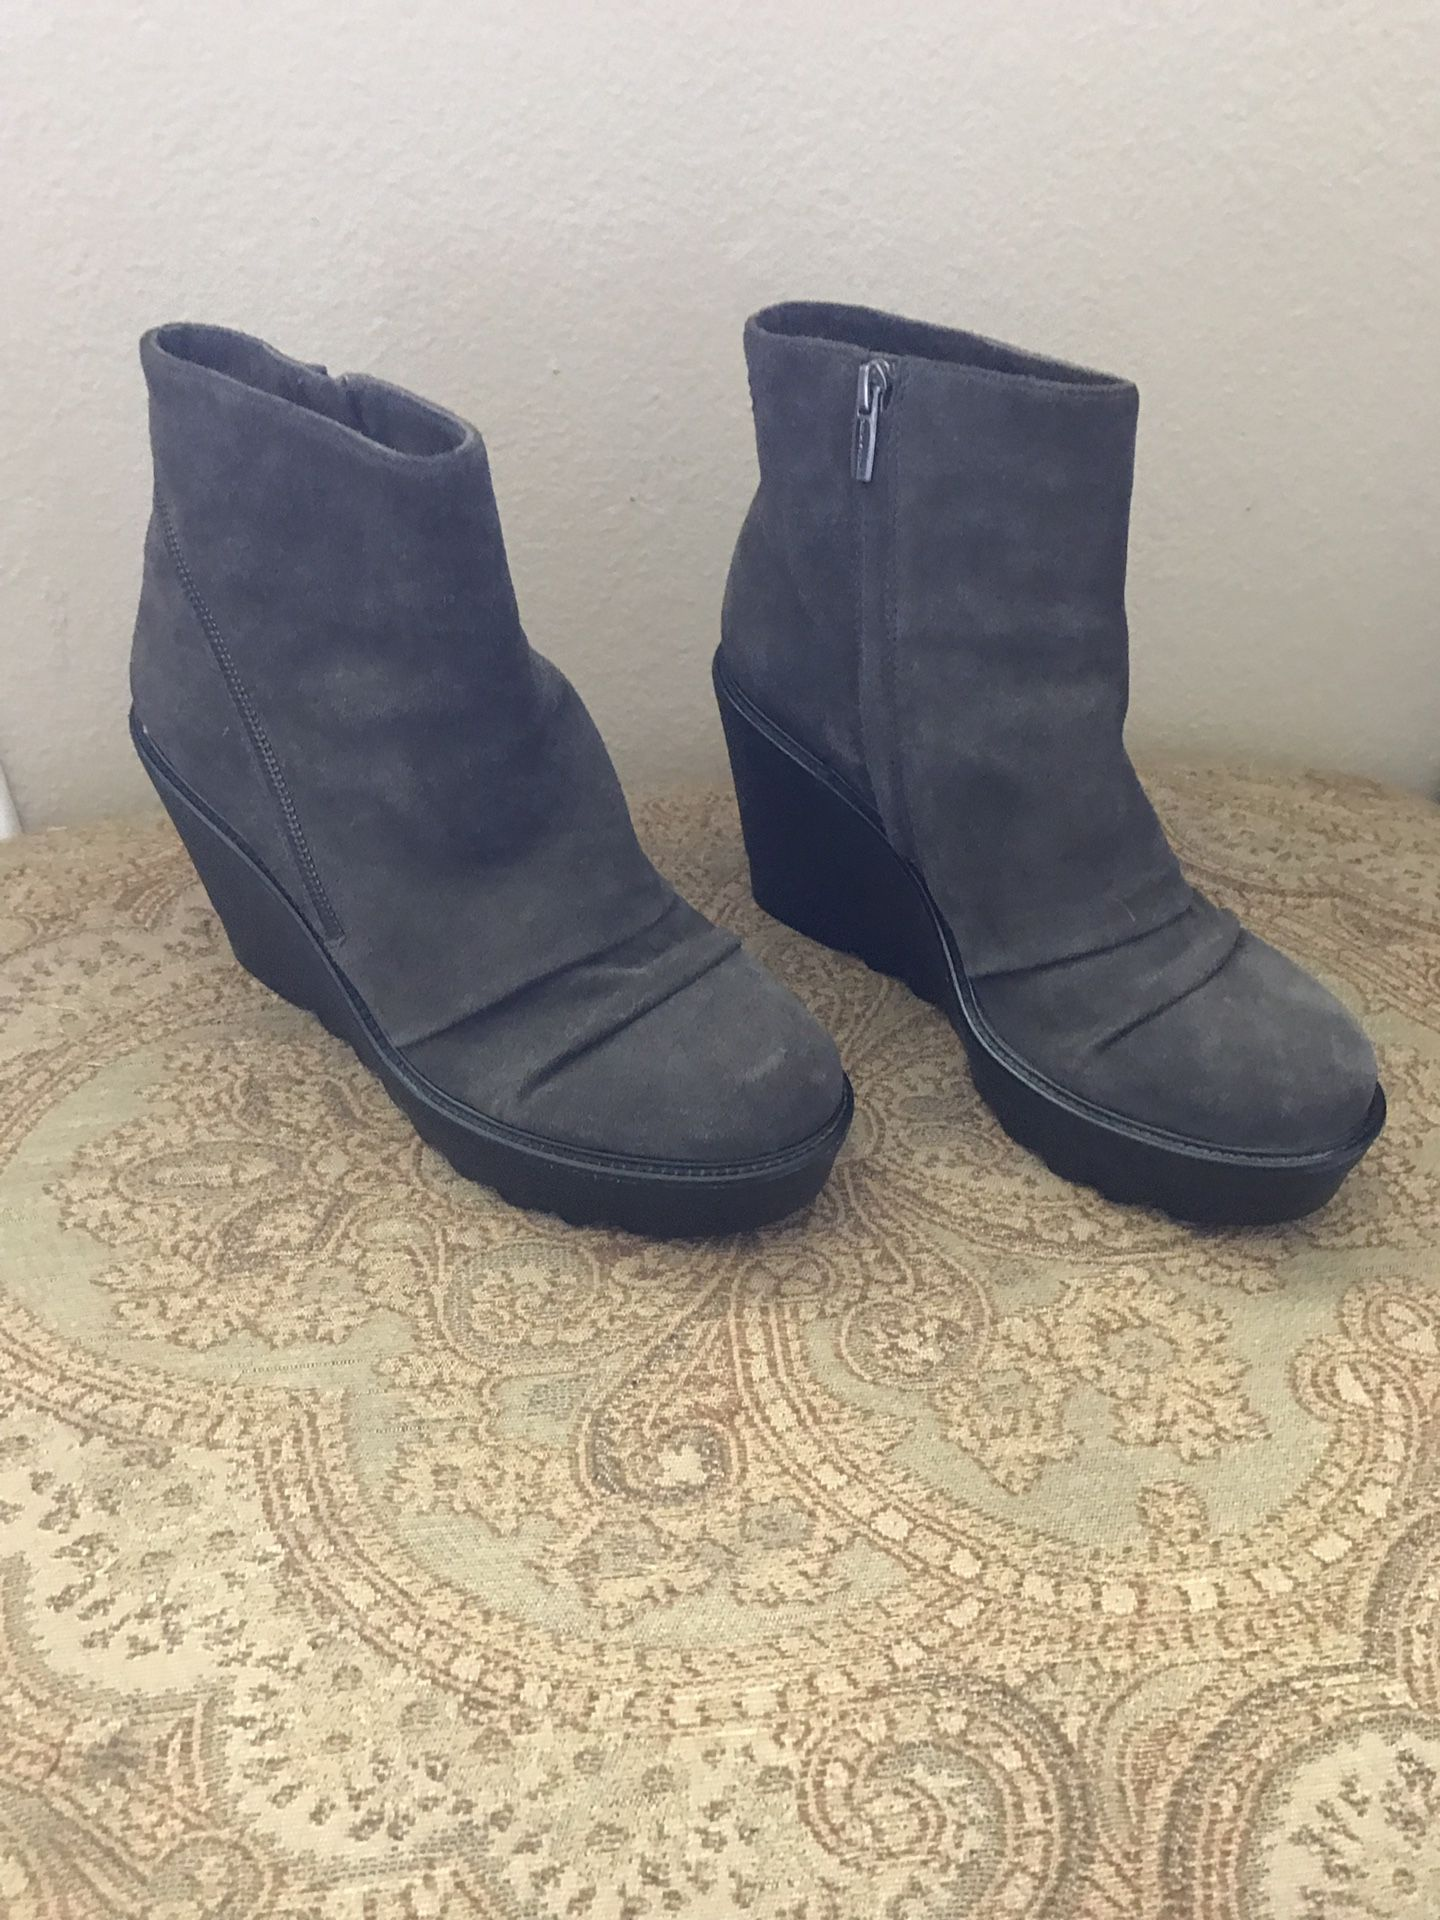 Vince Camuto women's booties size 10